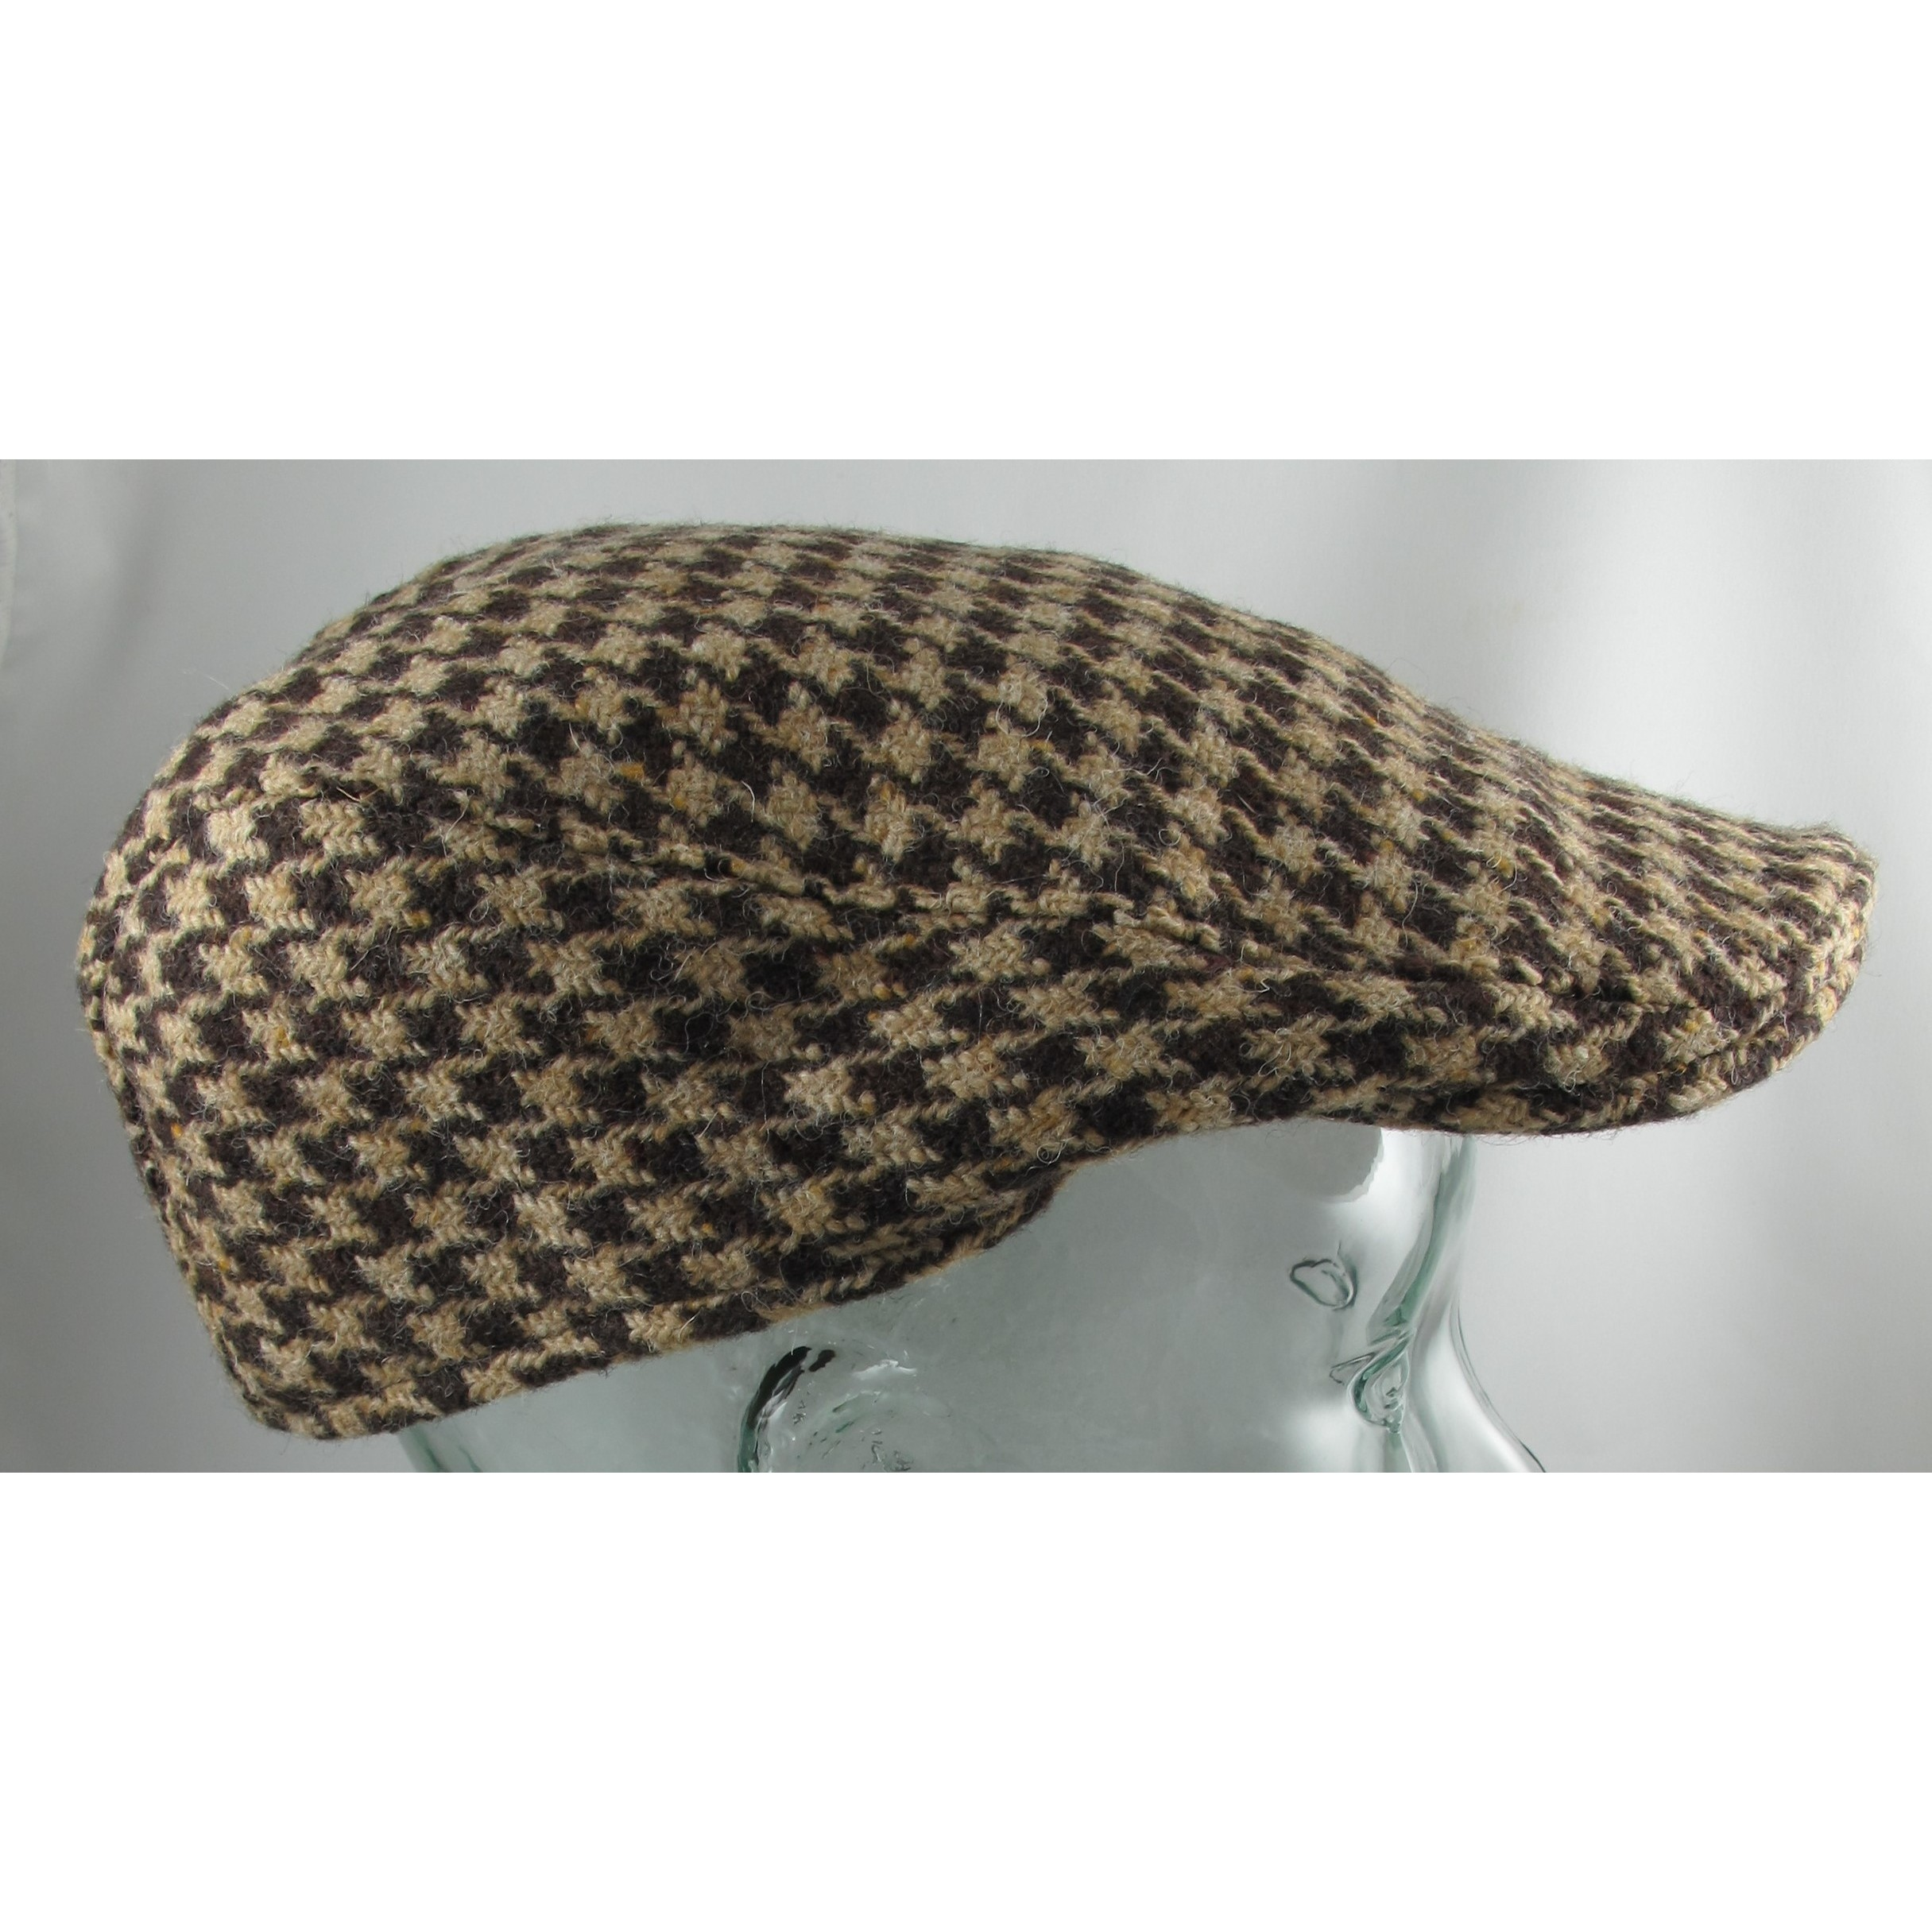 Hanna Hats Brown and Tan Check Touring Cap Clothing Caps Hats at ... 02d93c9143b